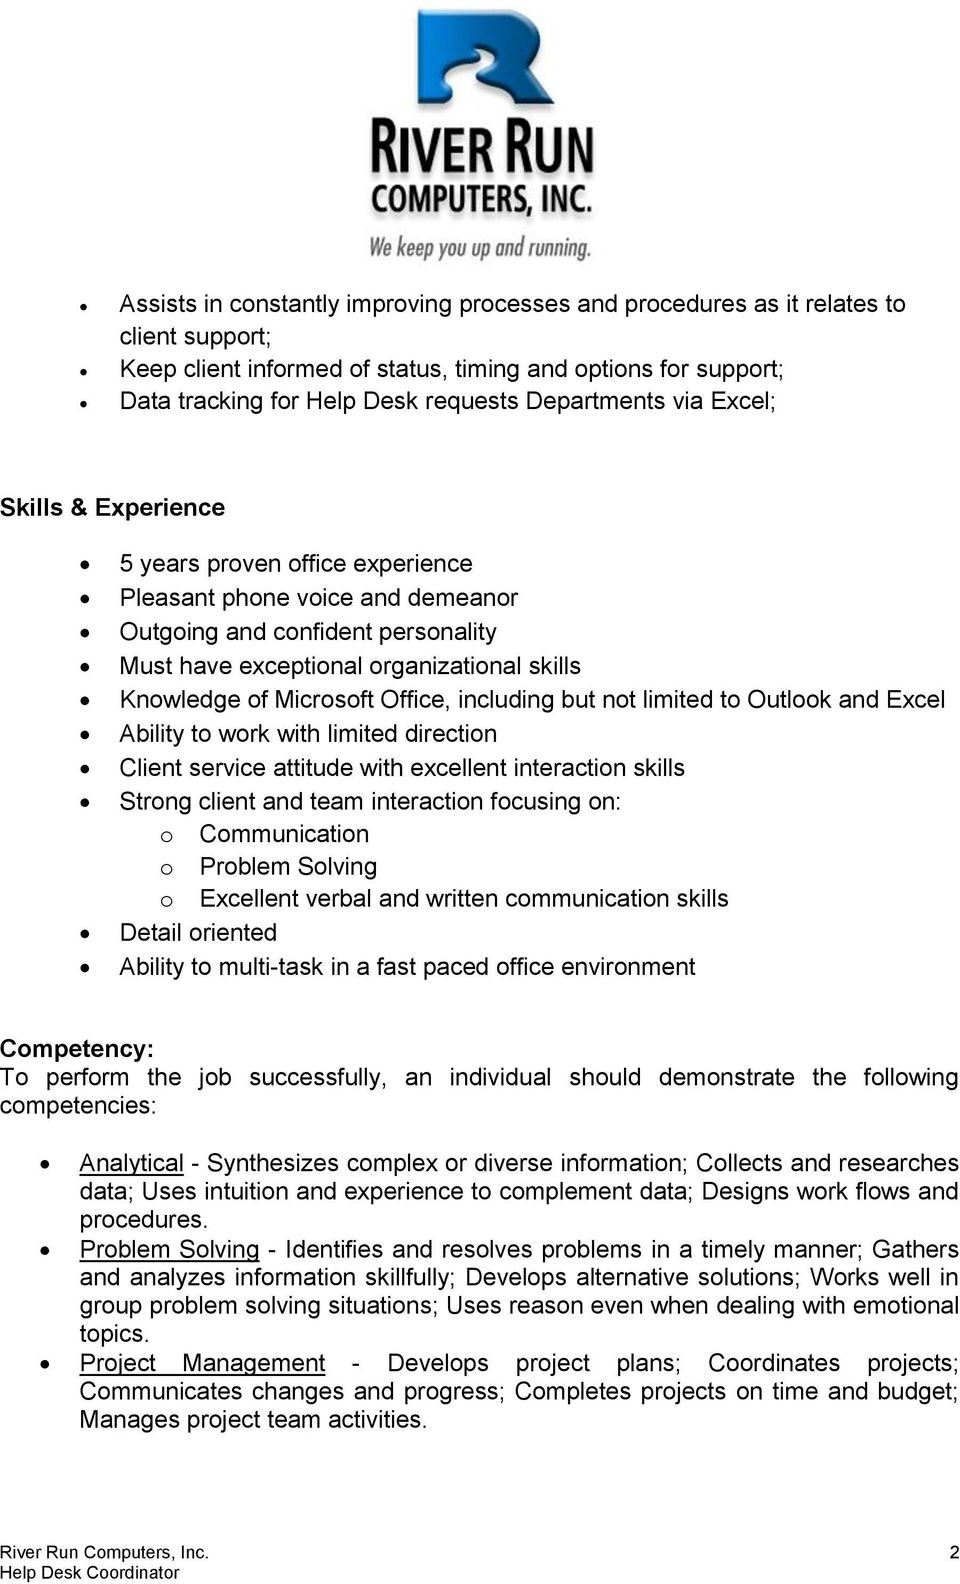 of Microsoft Office, including but not limited to Outlook and Excel Ability to work with limited direction Client service attitude with excellent interaction skills Strong client and team interaction